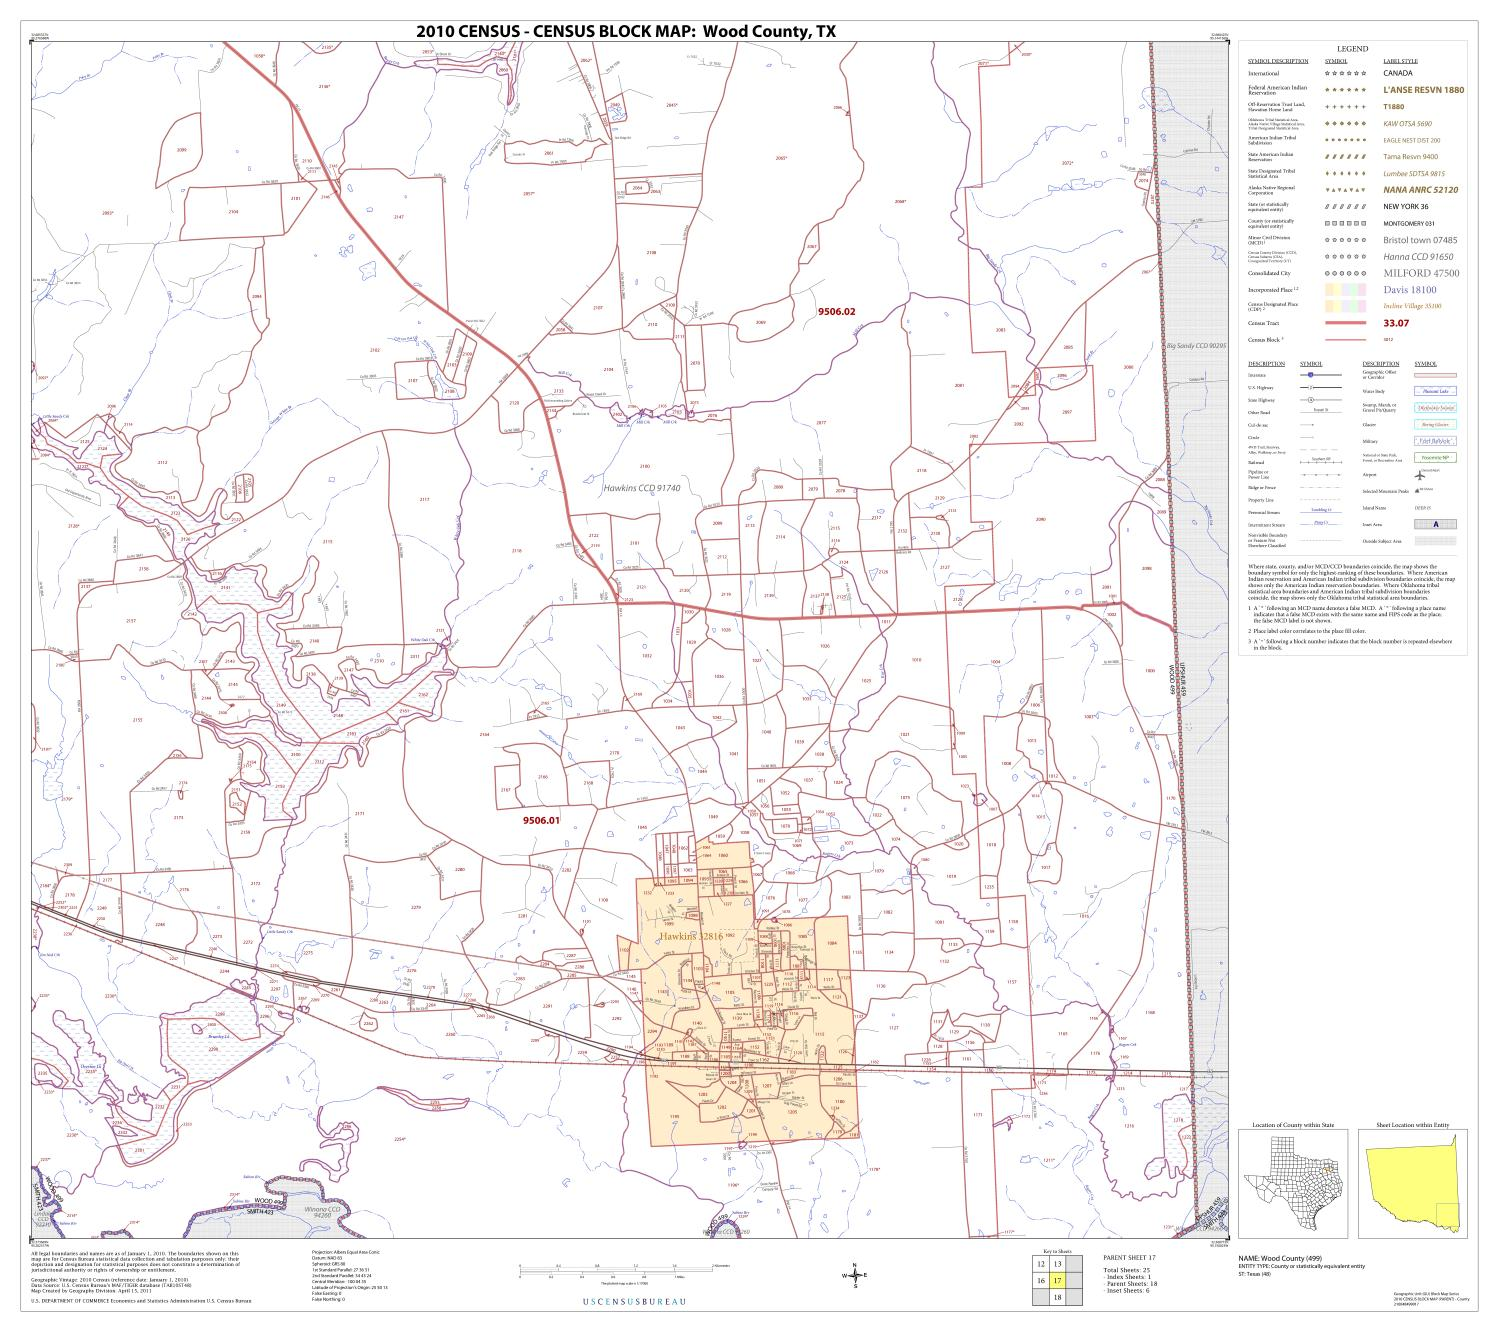 2010 Census County Block Map: Wood County, Block 17                                                                                                      [Sequence #]: 1 of 1